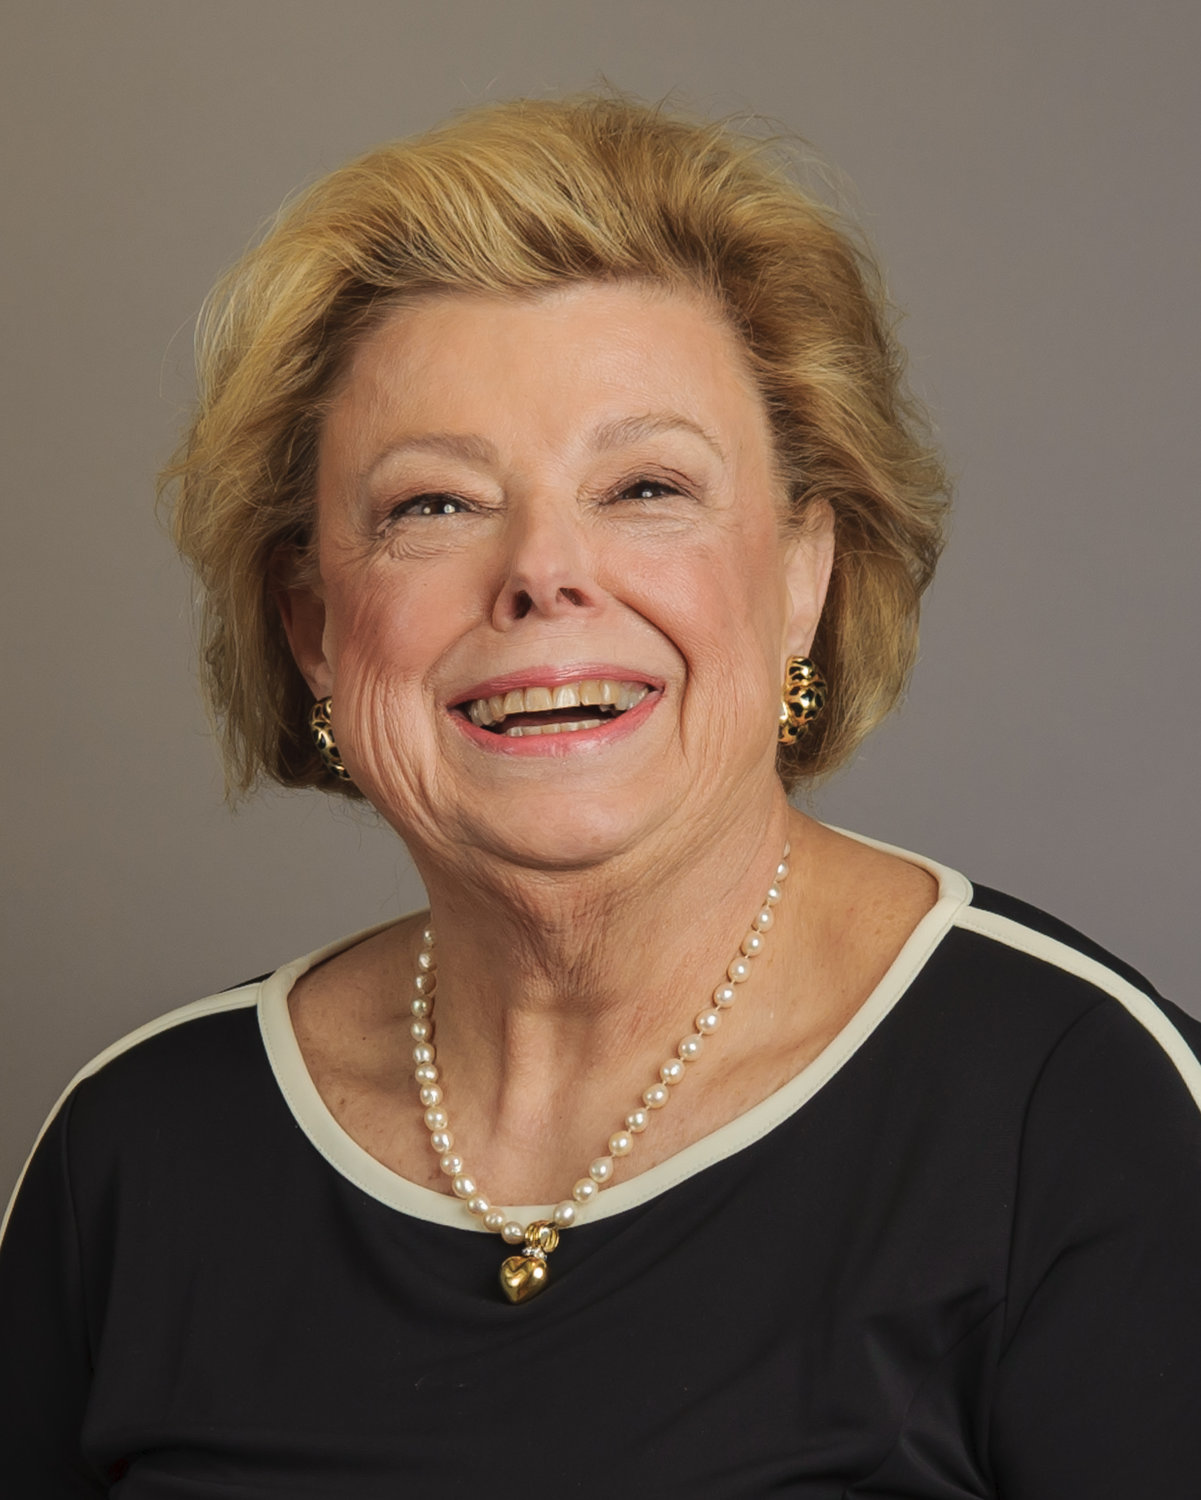 NYU Winthrop Hospital will honor Harriette Thayer, of Lawrence, chairwoman of the health facility's Board of Regents.